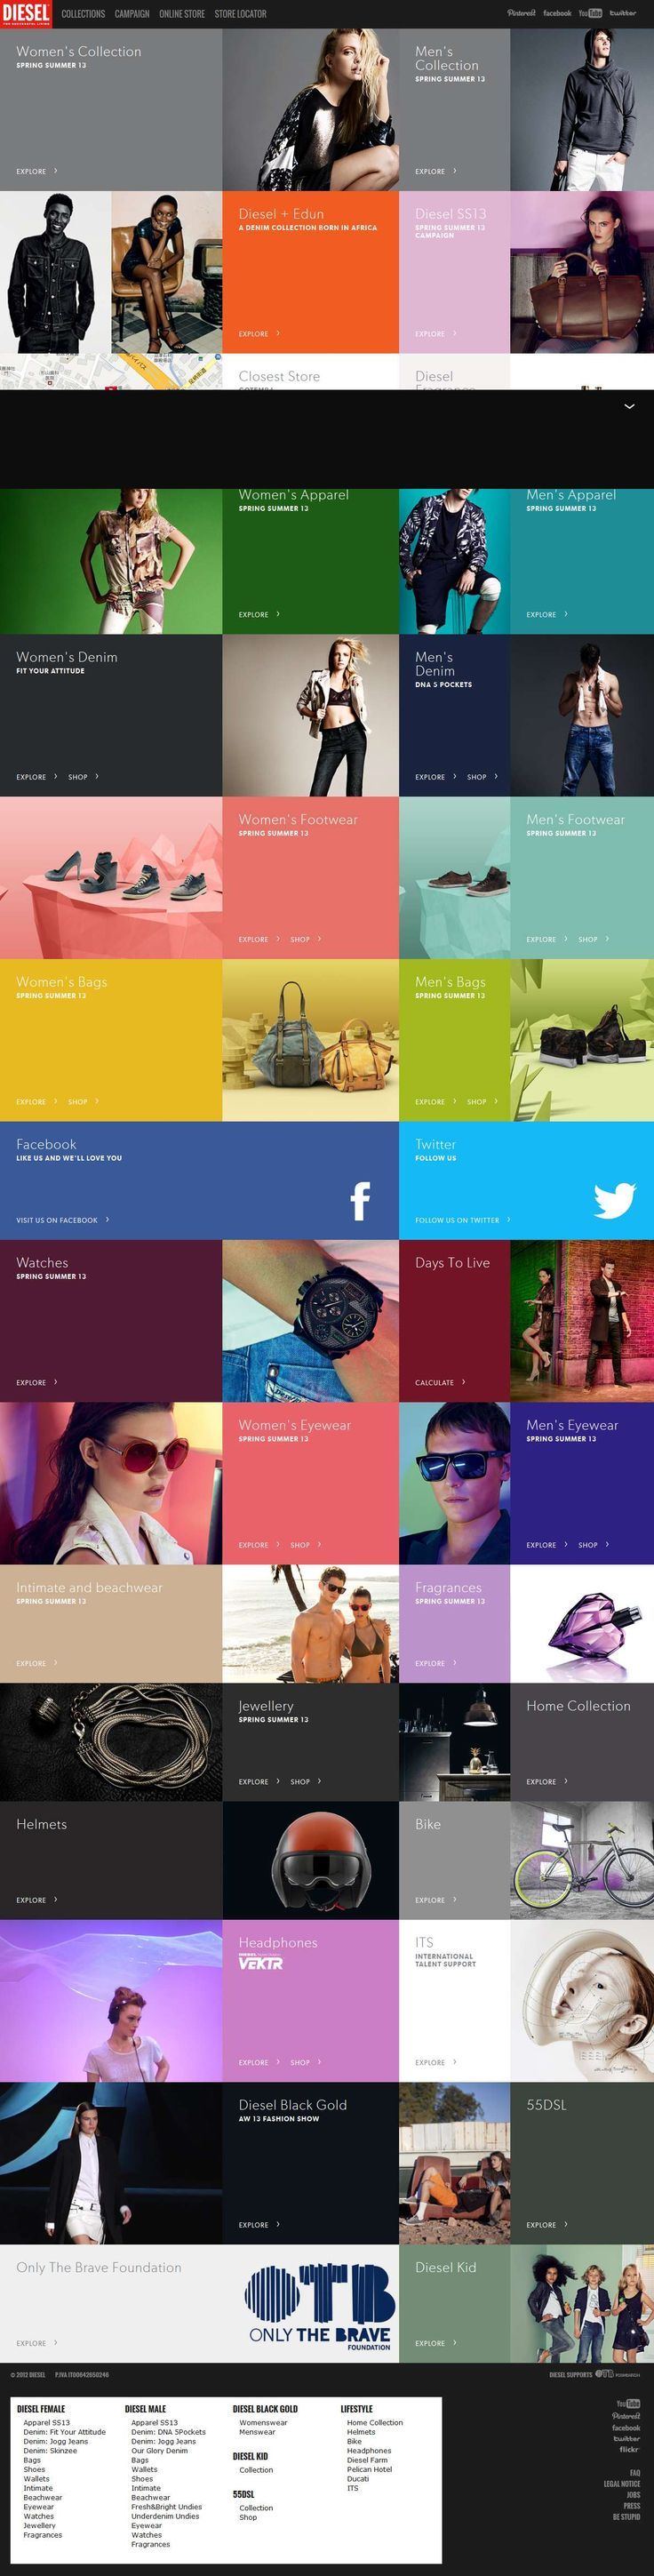 We've been addicted to grid layouts. It's nice to find good inspiration. These types of layouts are good for products, portfolios, and services. | Pinterest